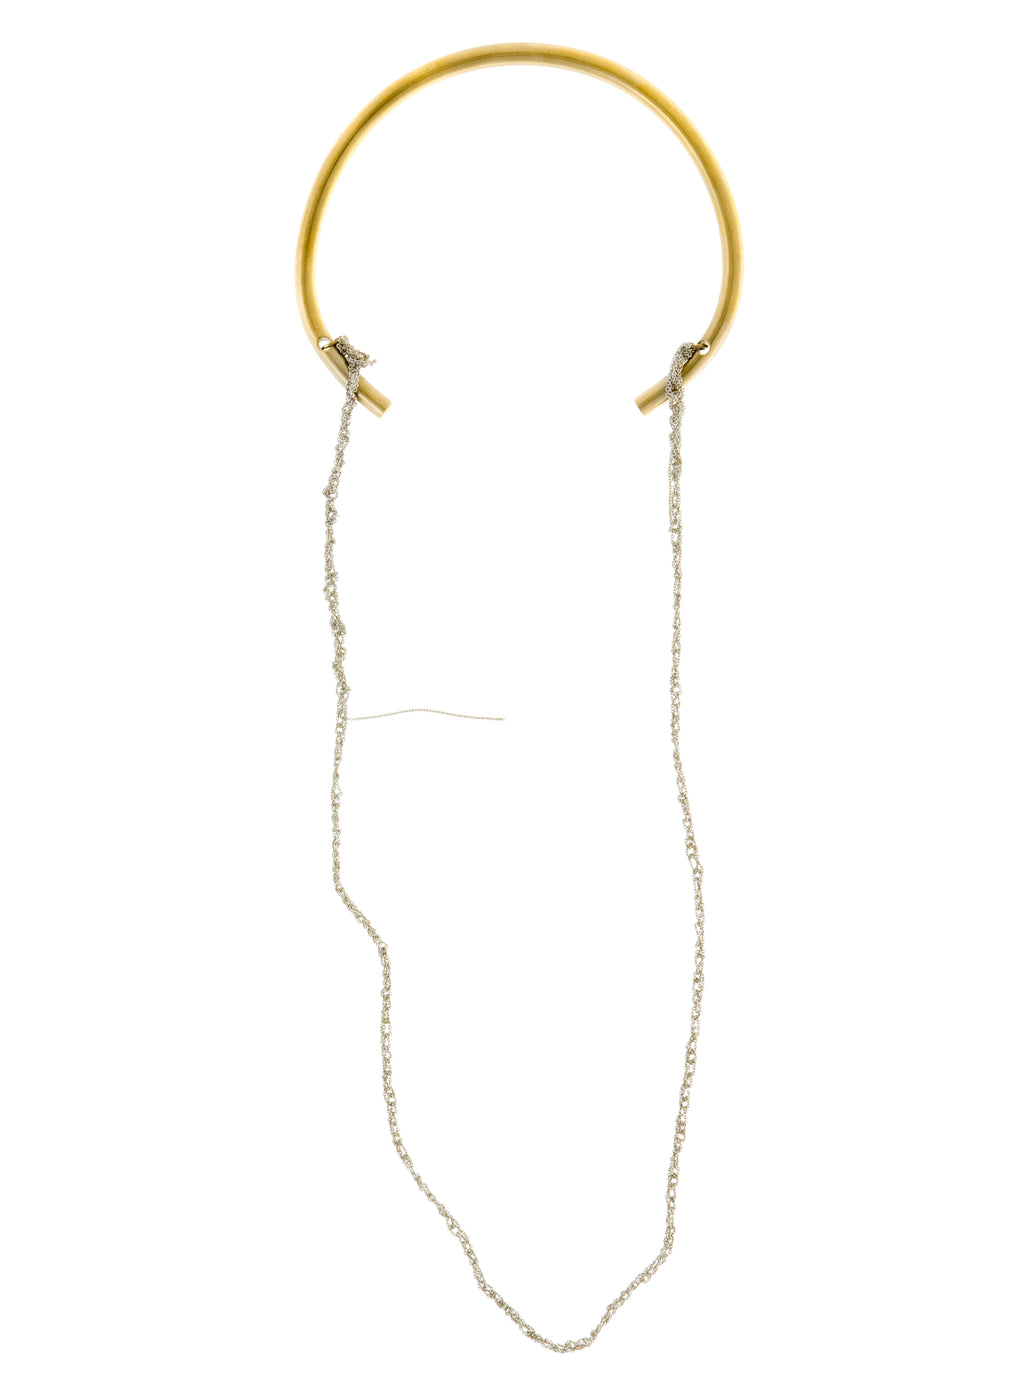 Circuit Necklace in Silver w/ Brass Hardware